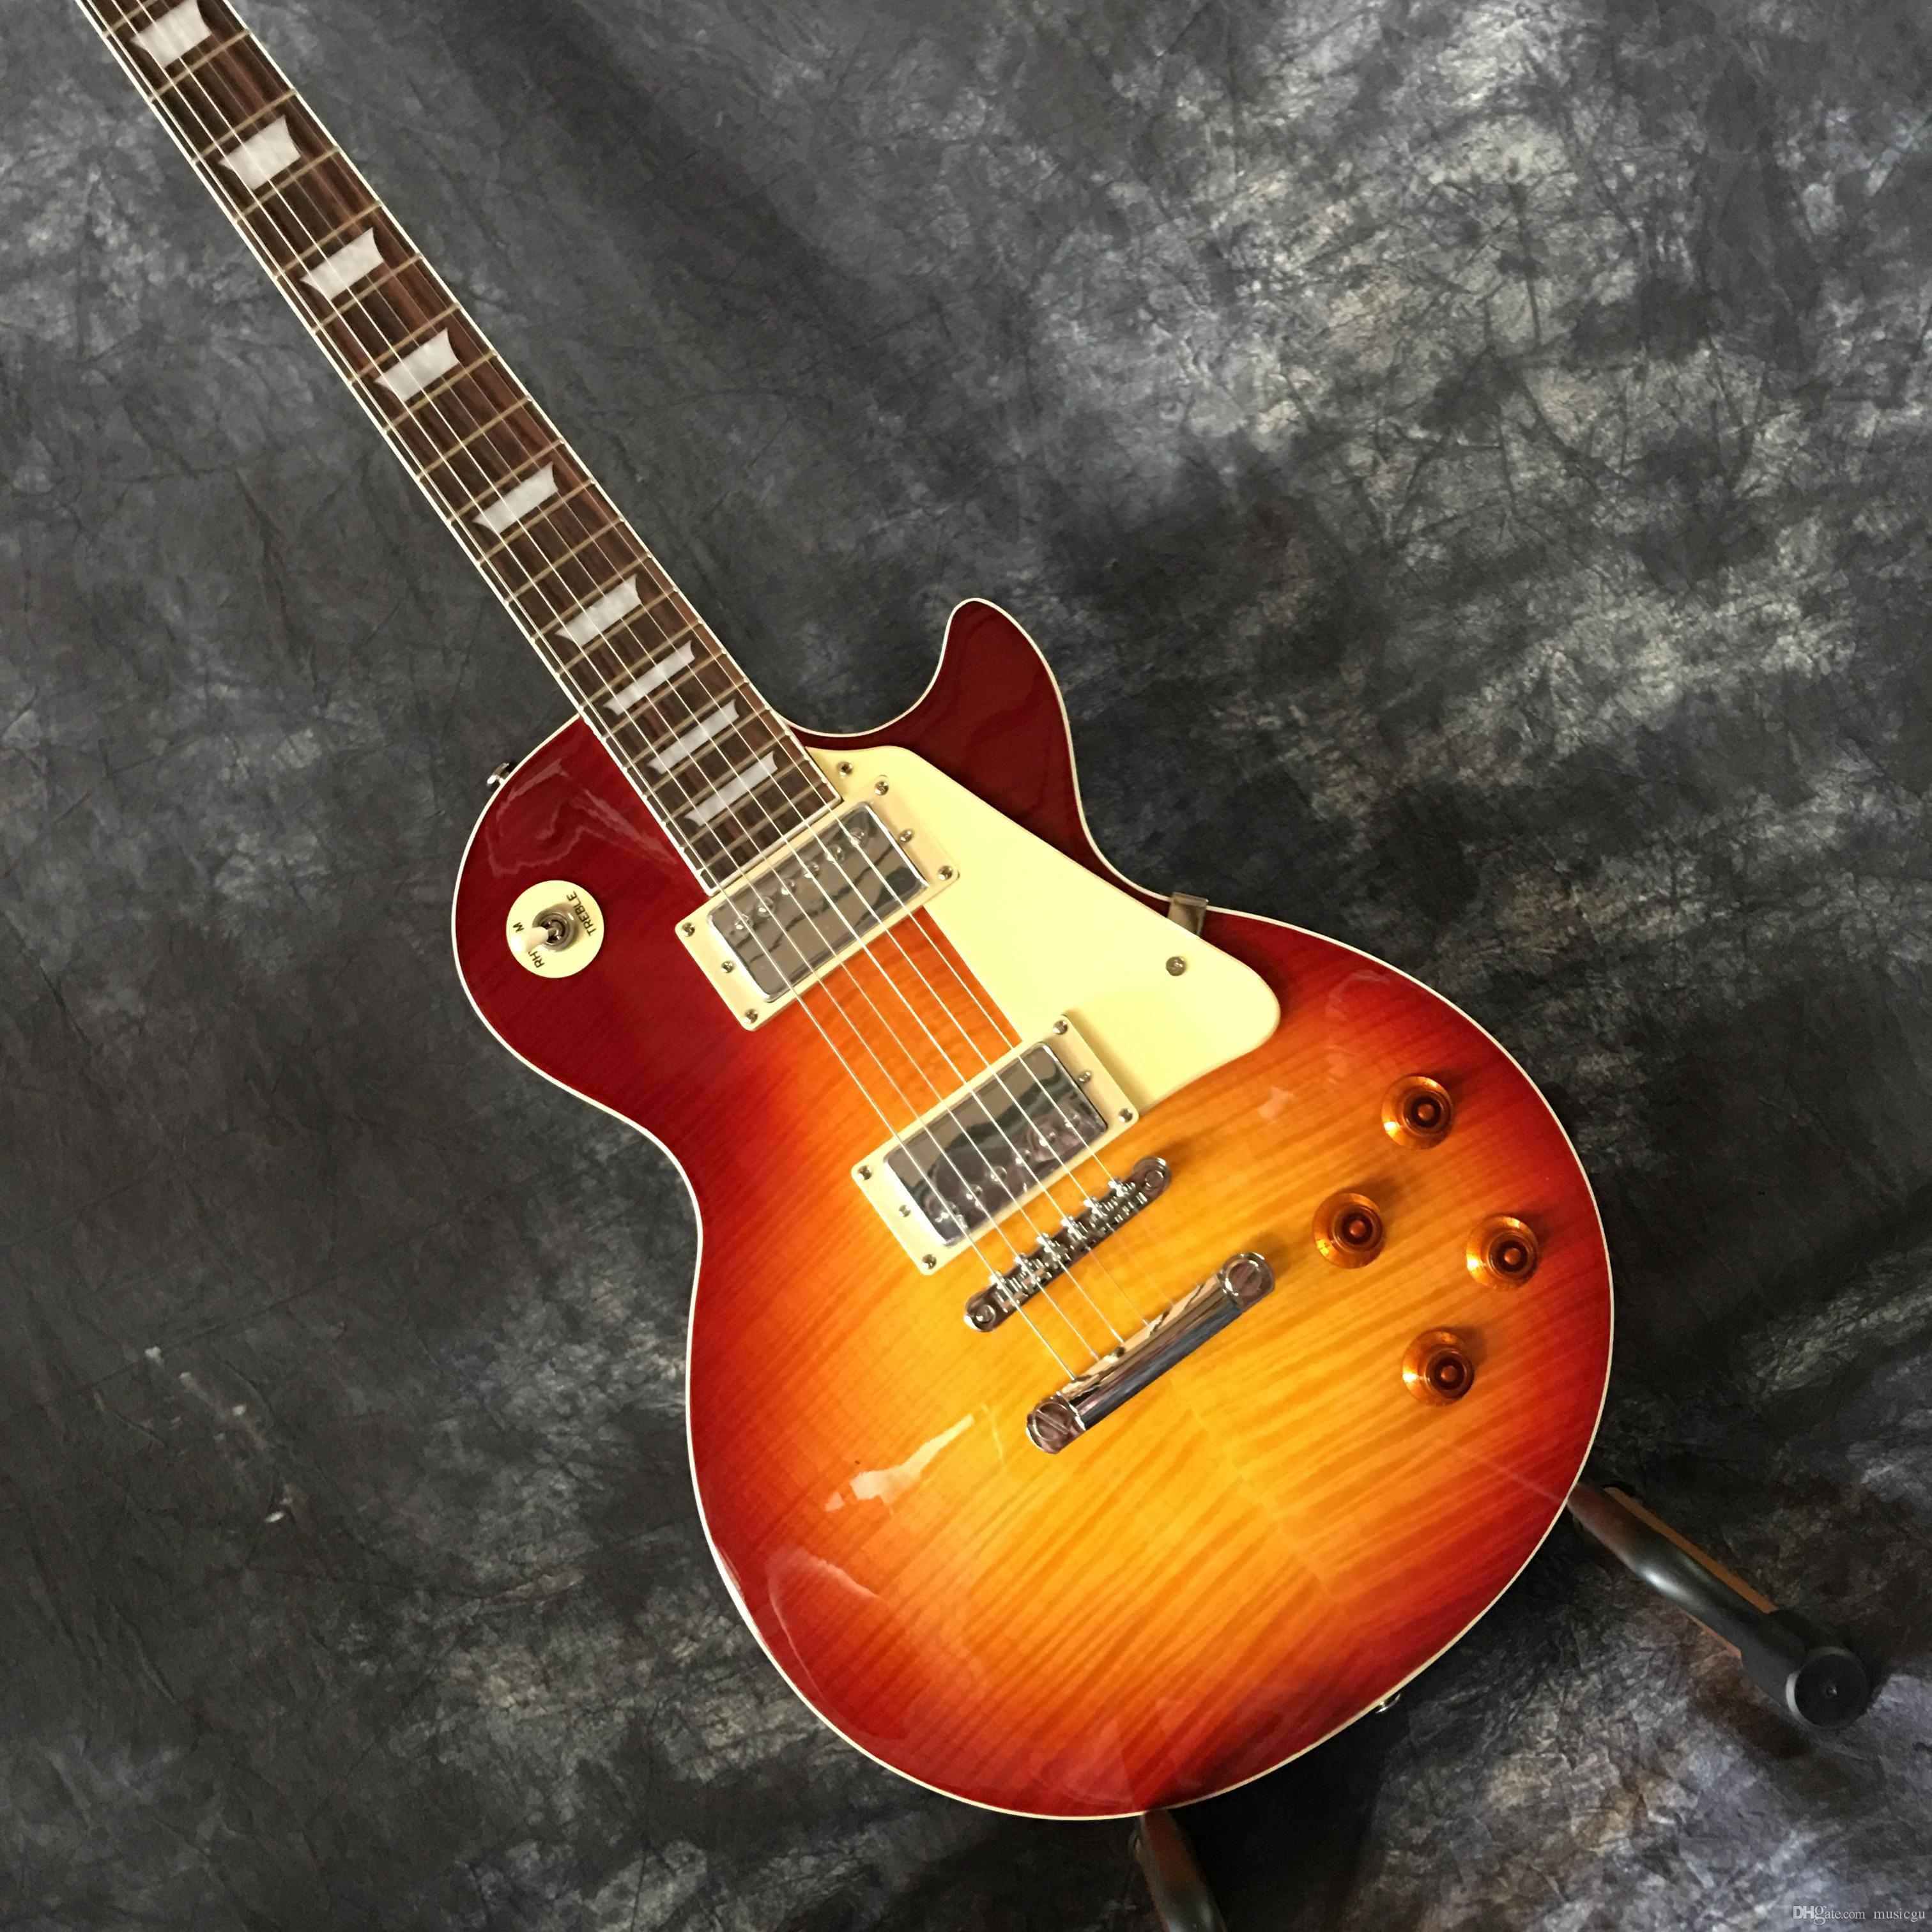 Free Shipping New 2020 Electric Guitar Guitar in China. Good Sound Quality